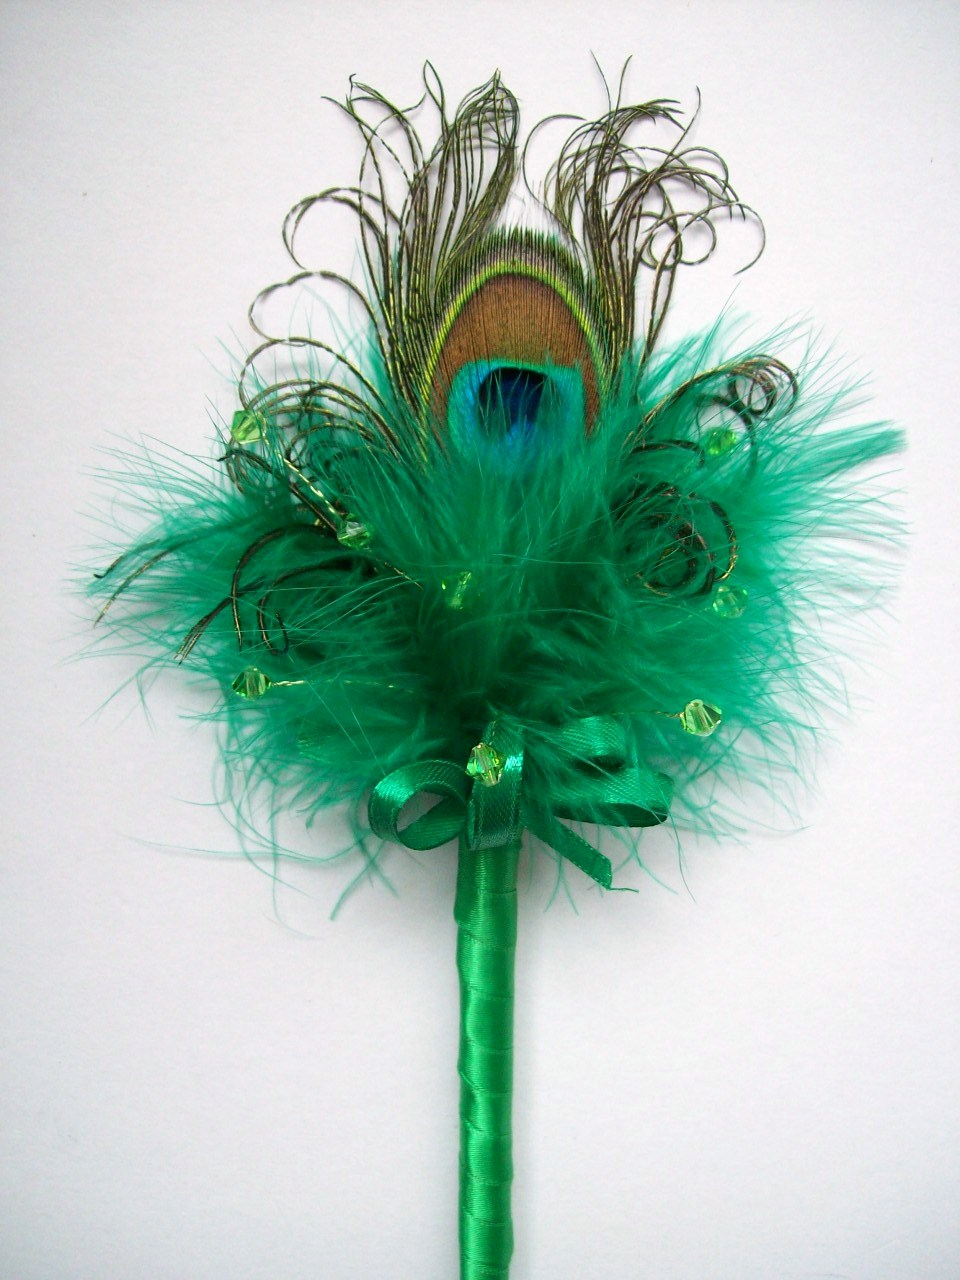 Emerald Green Peacock Feather Crystal Fairy Wand